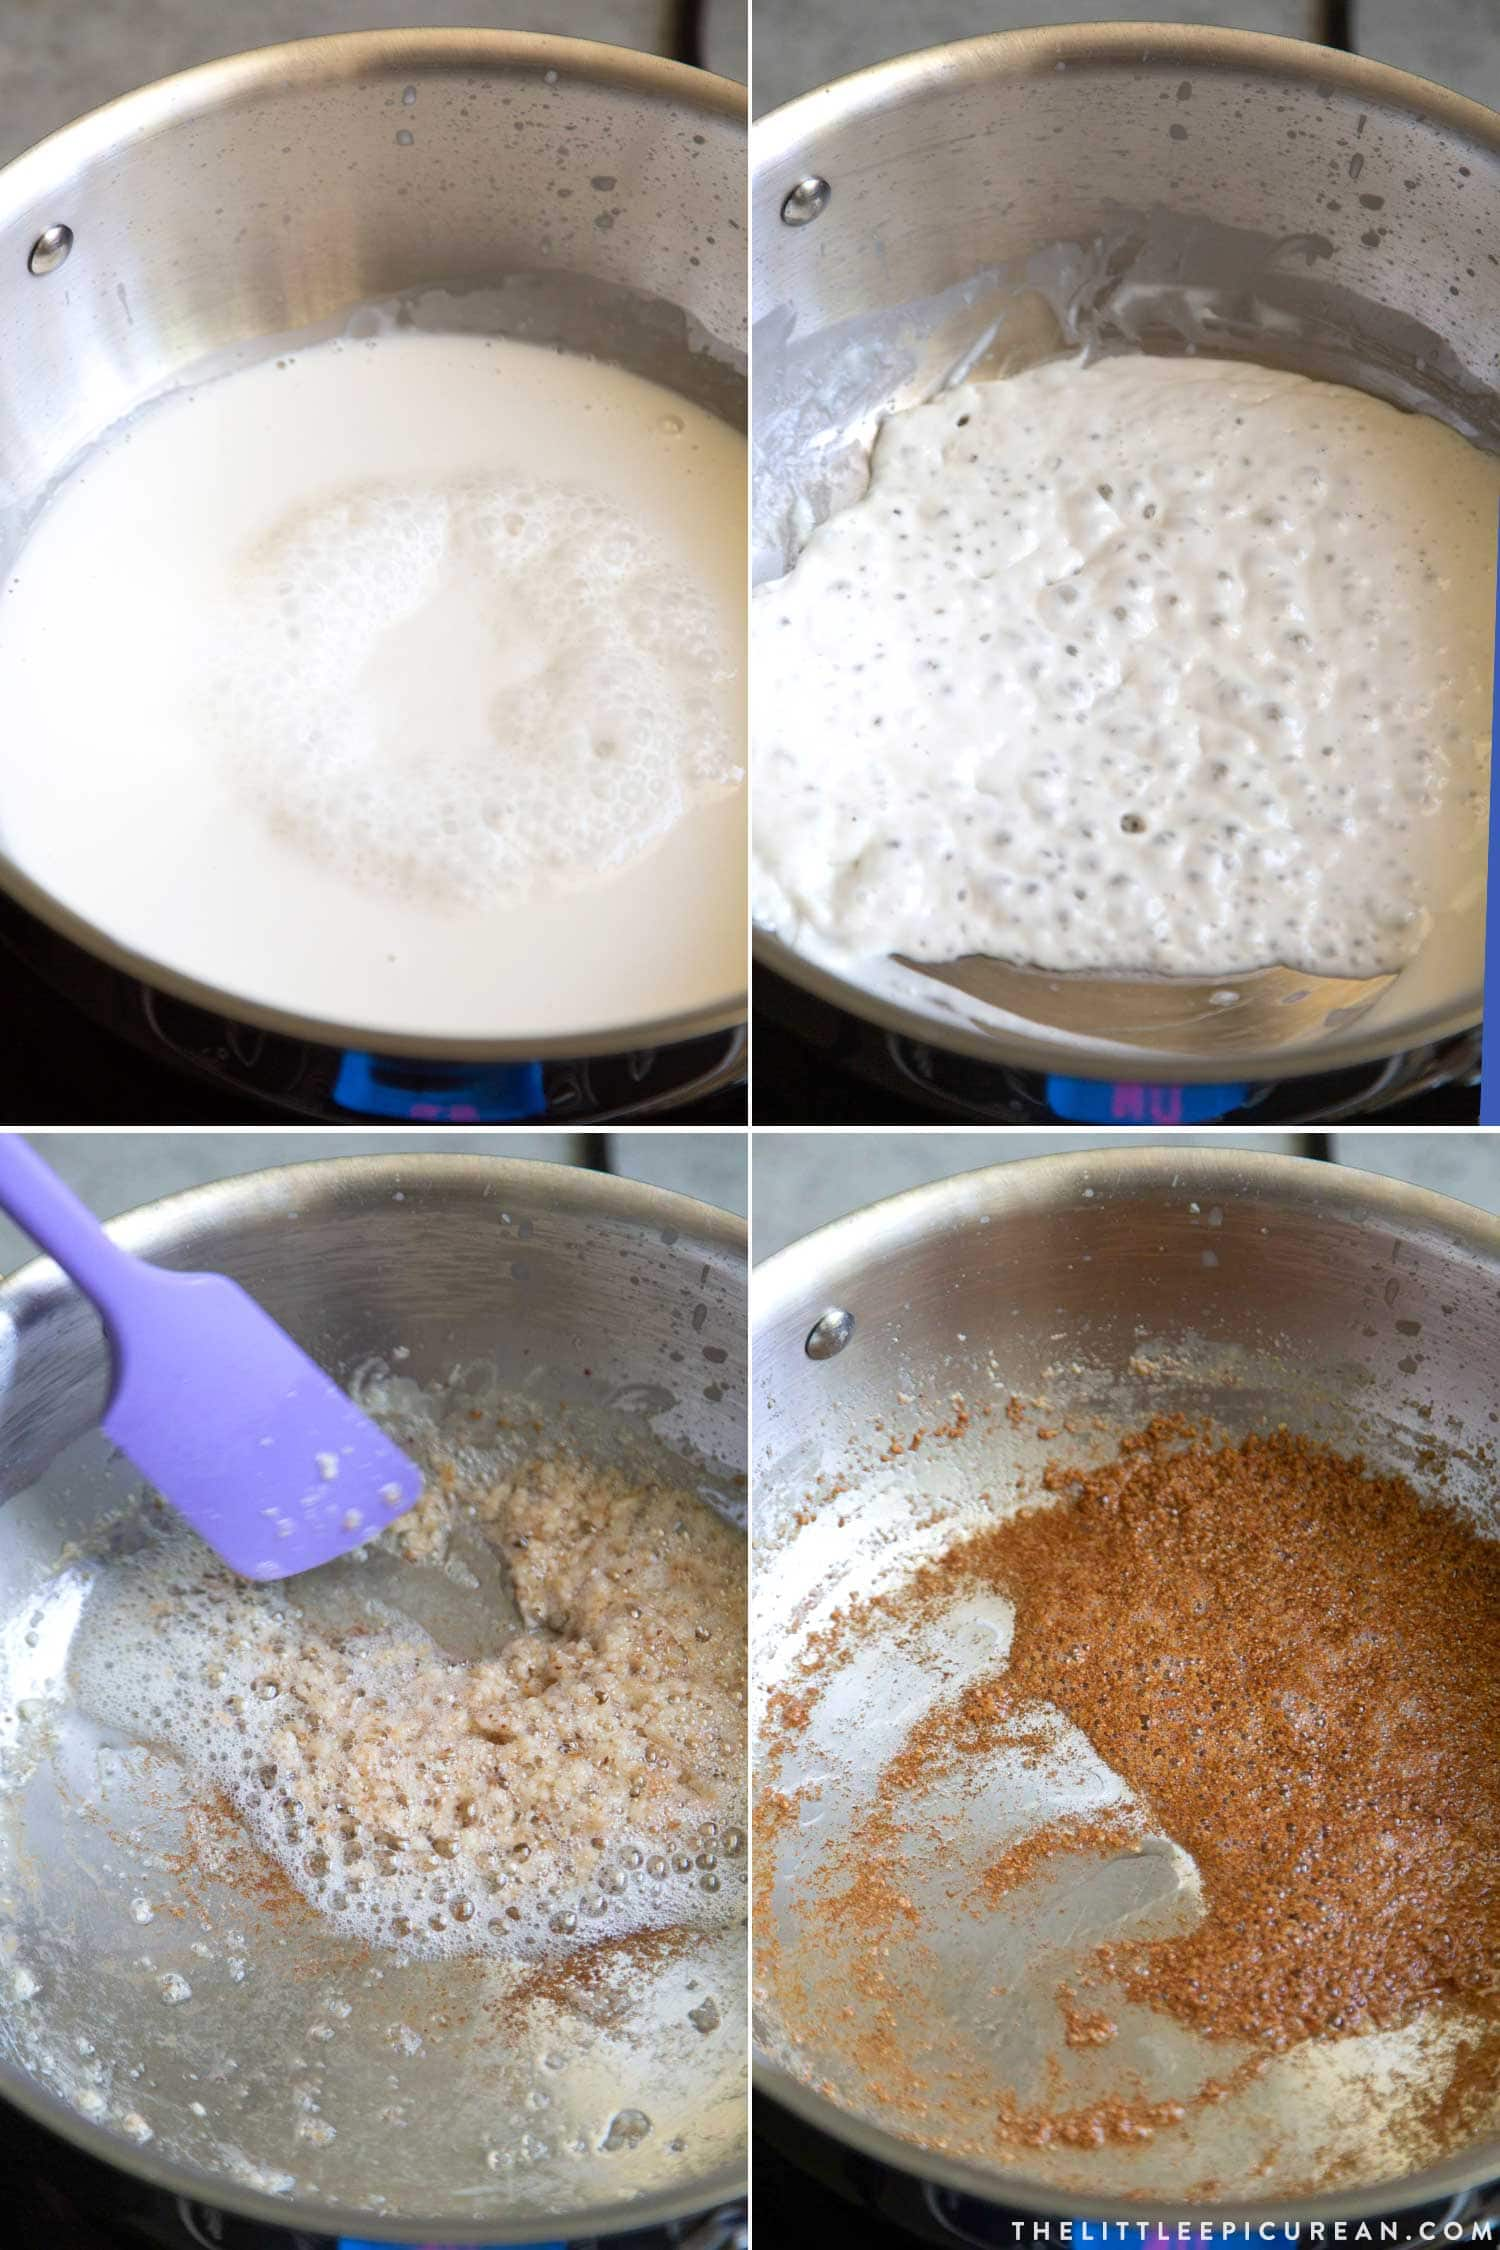 How to Make Coconut Latik (Filipino fried coconut milk curds)